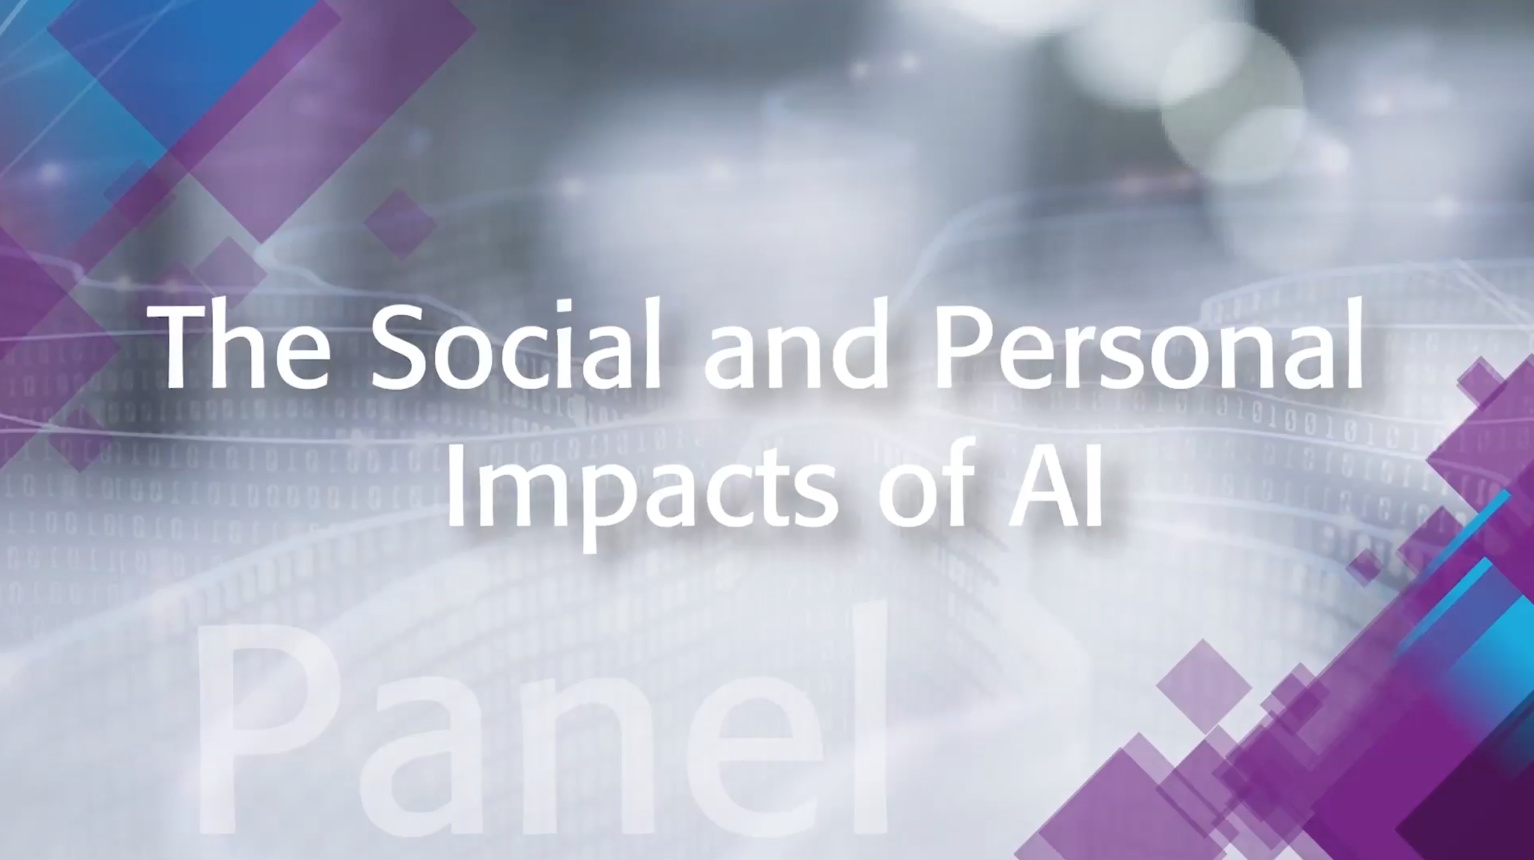 The Social and Personal Impacts of AI: IEEE TechEthics Panel